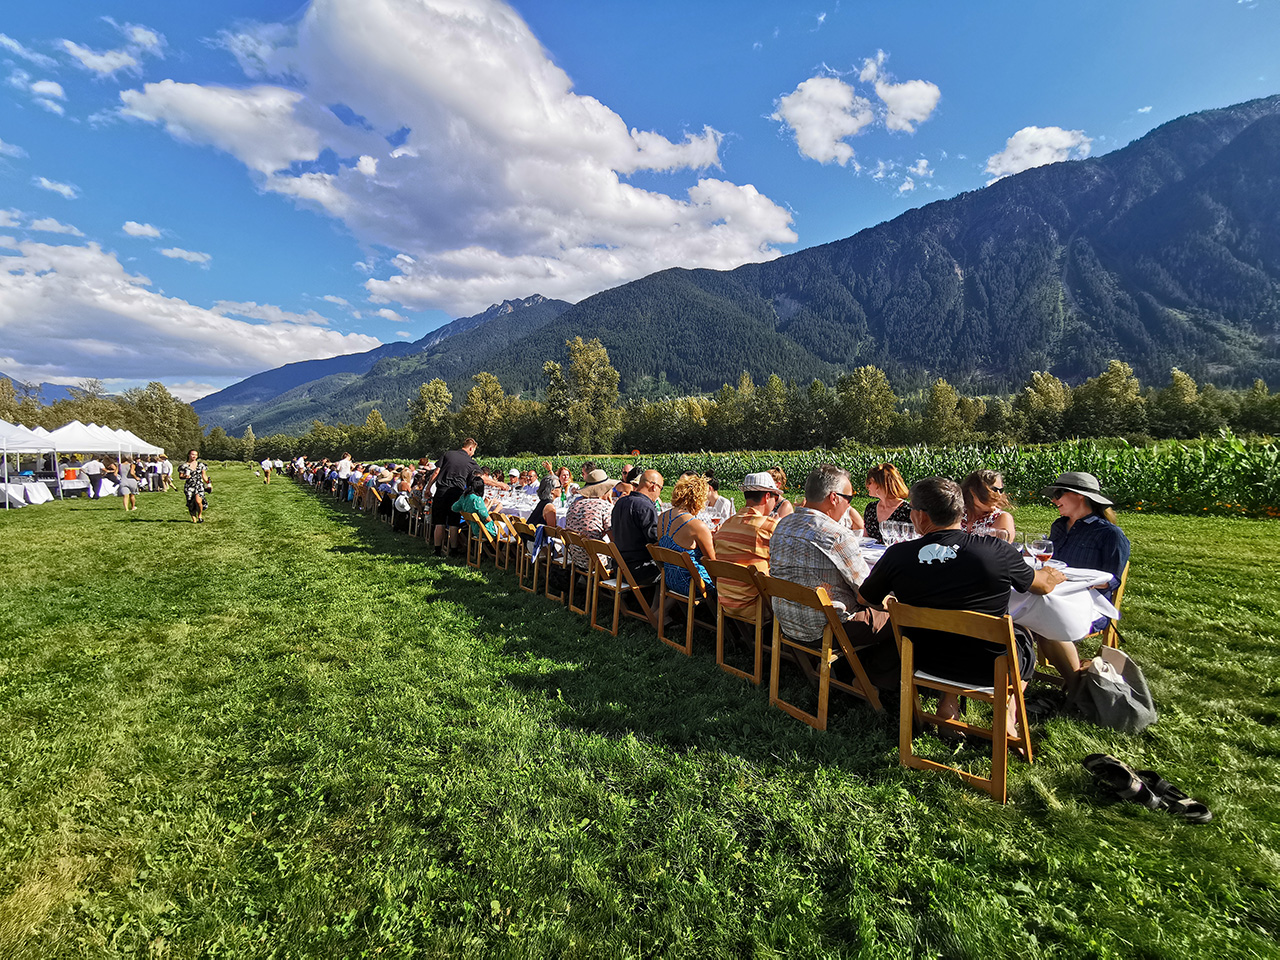 The longtable set up to face the majestic mountain backdrop.